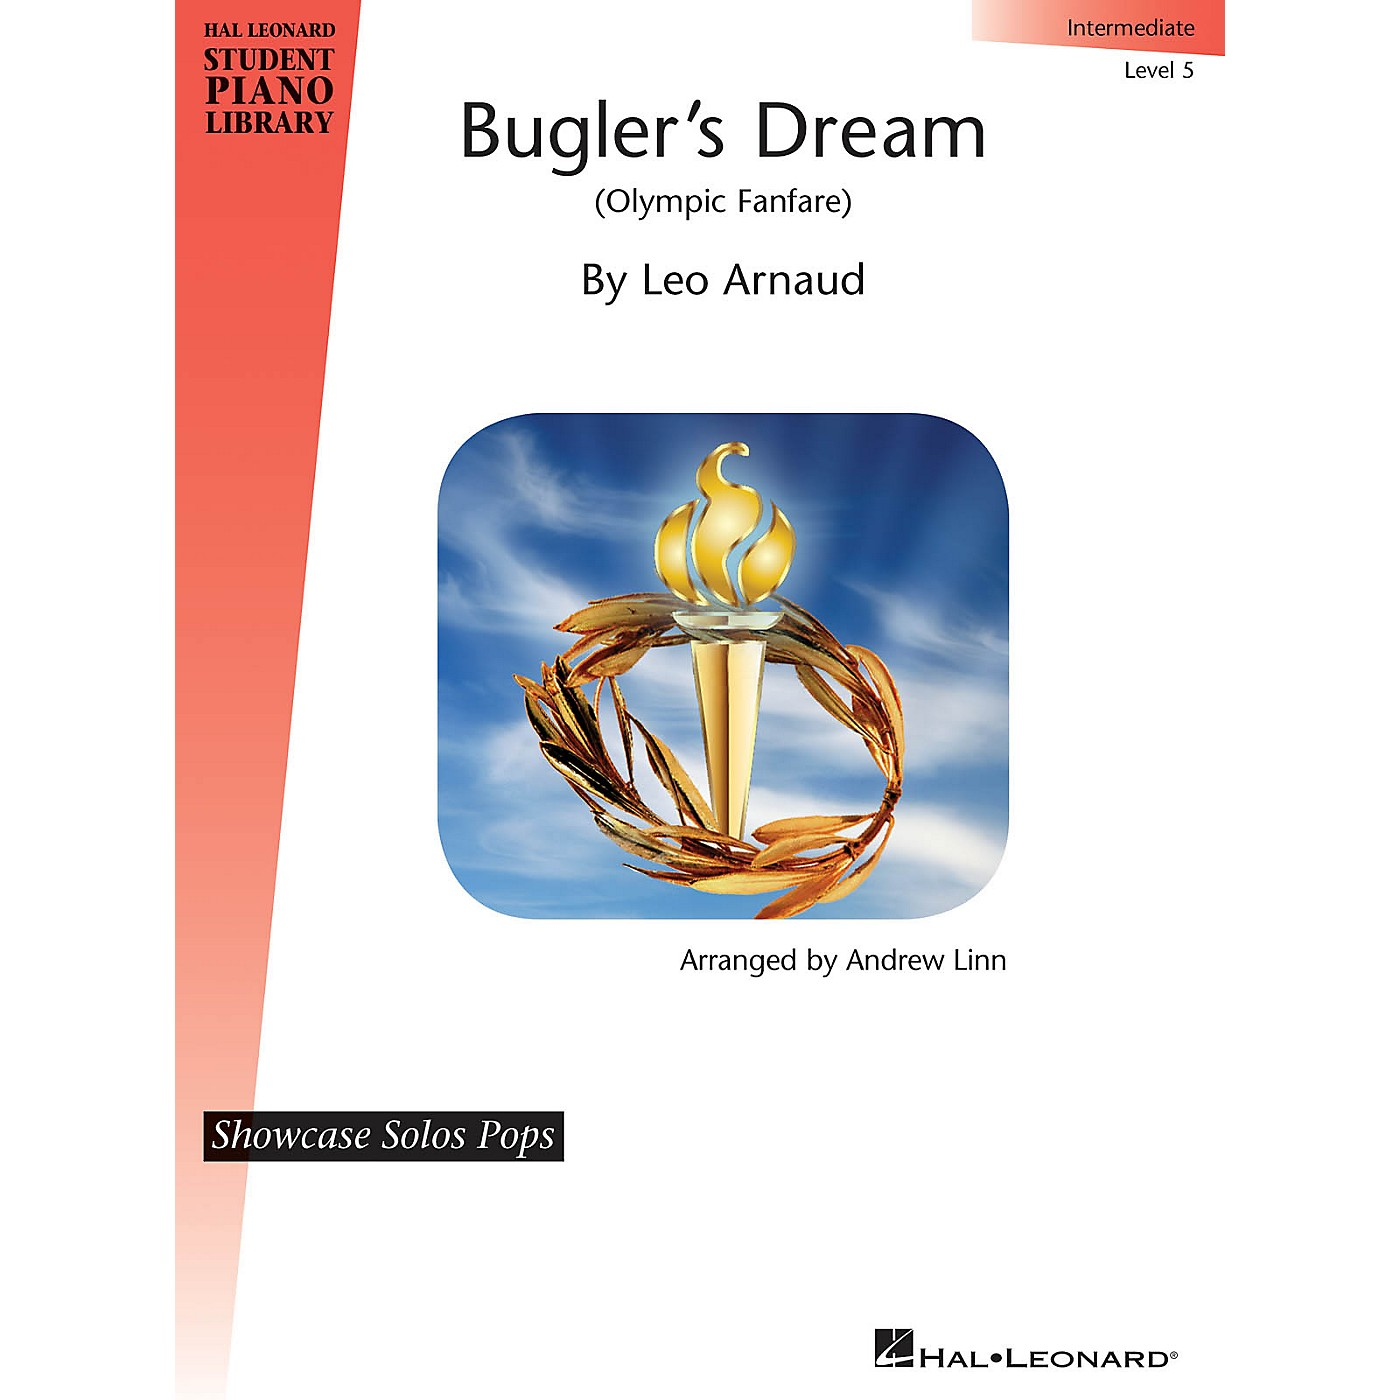 Hal Leonard Bugler's Dream (Olympic Fanfare) Piano Library Series Book by Leo Arnaud (Level Inter) thumbnail